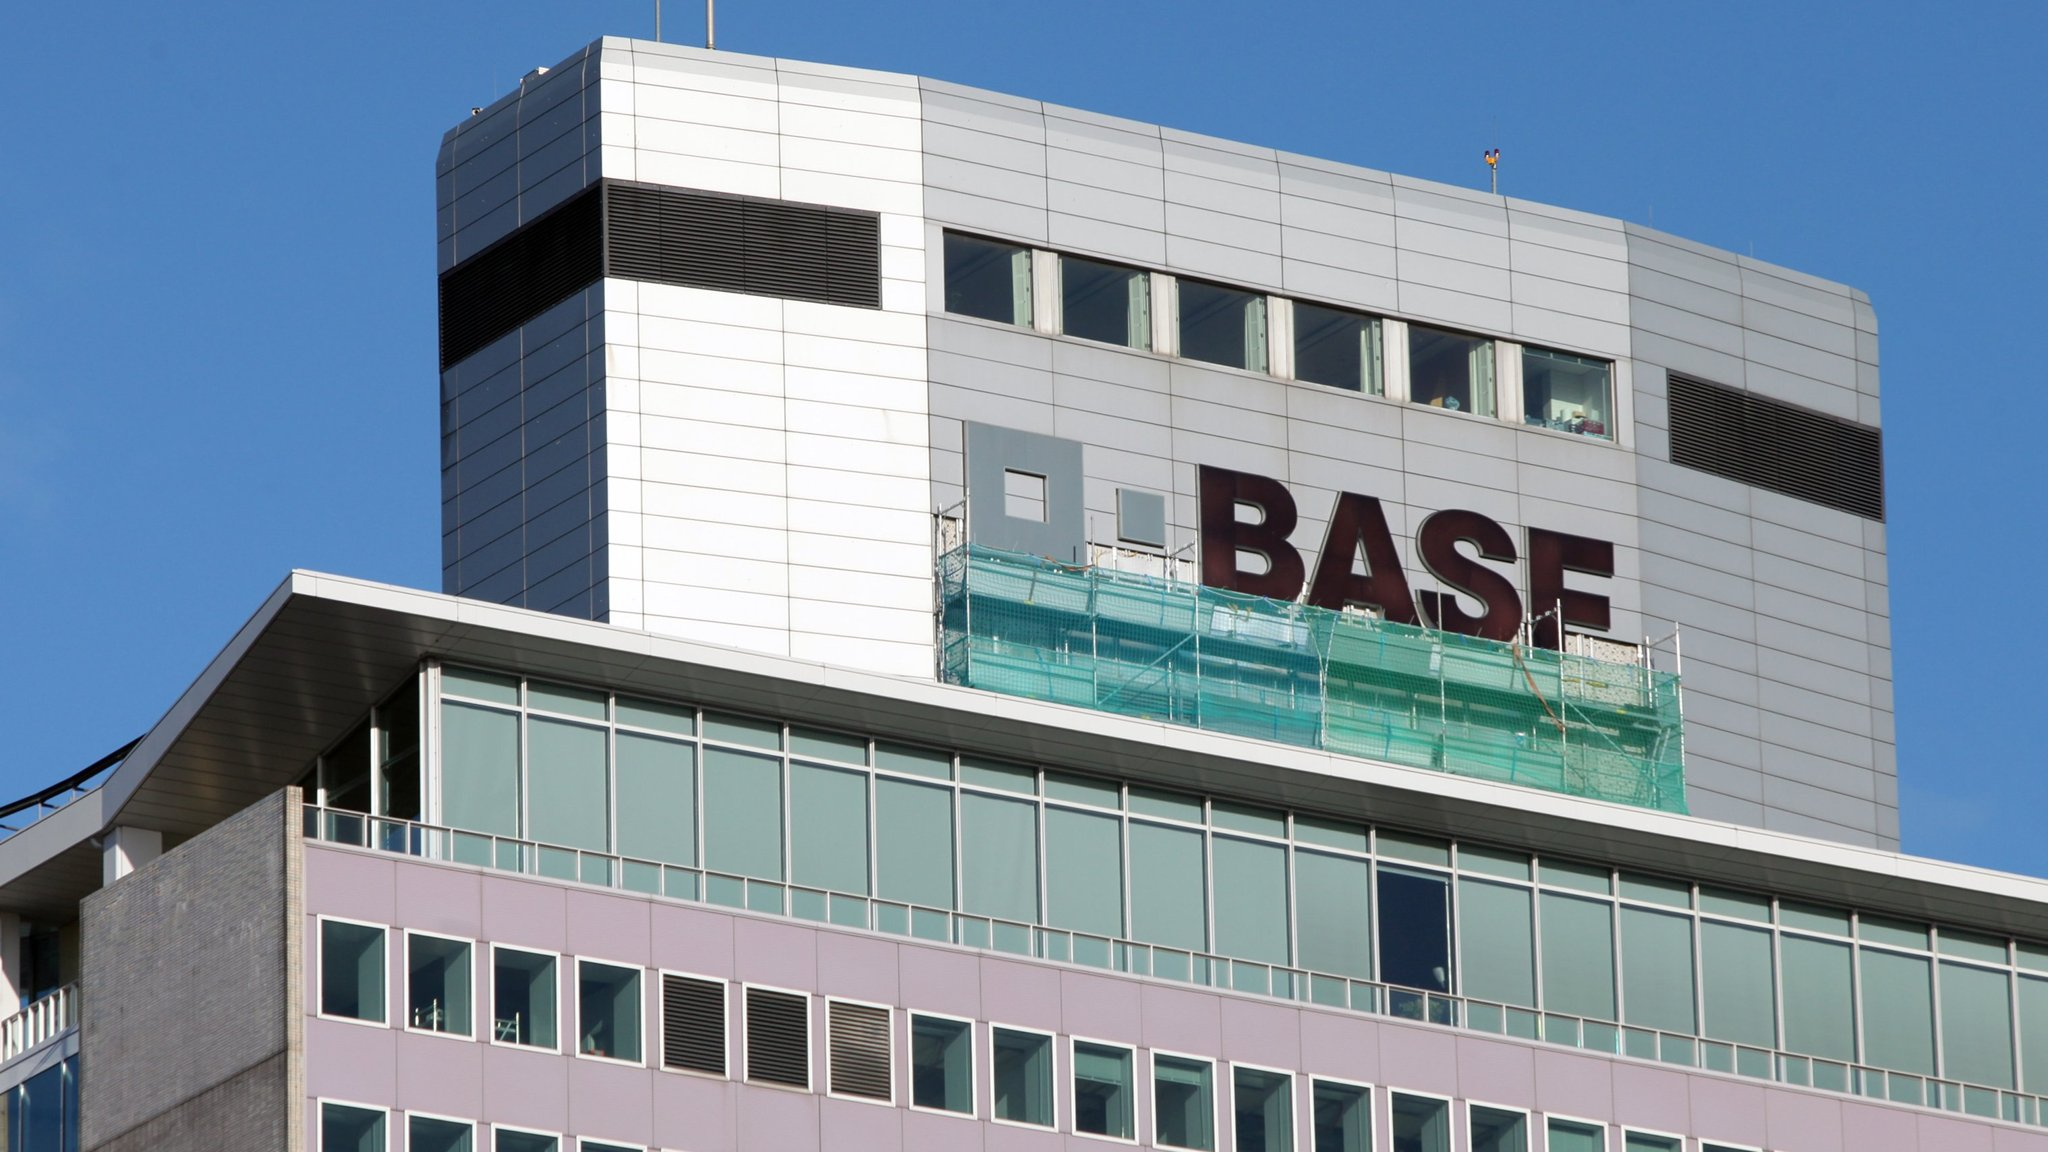 BASF buys Chemetall surface treatment unit for $3 2bn